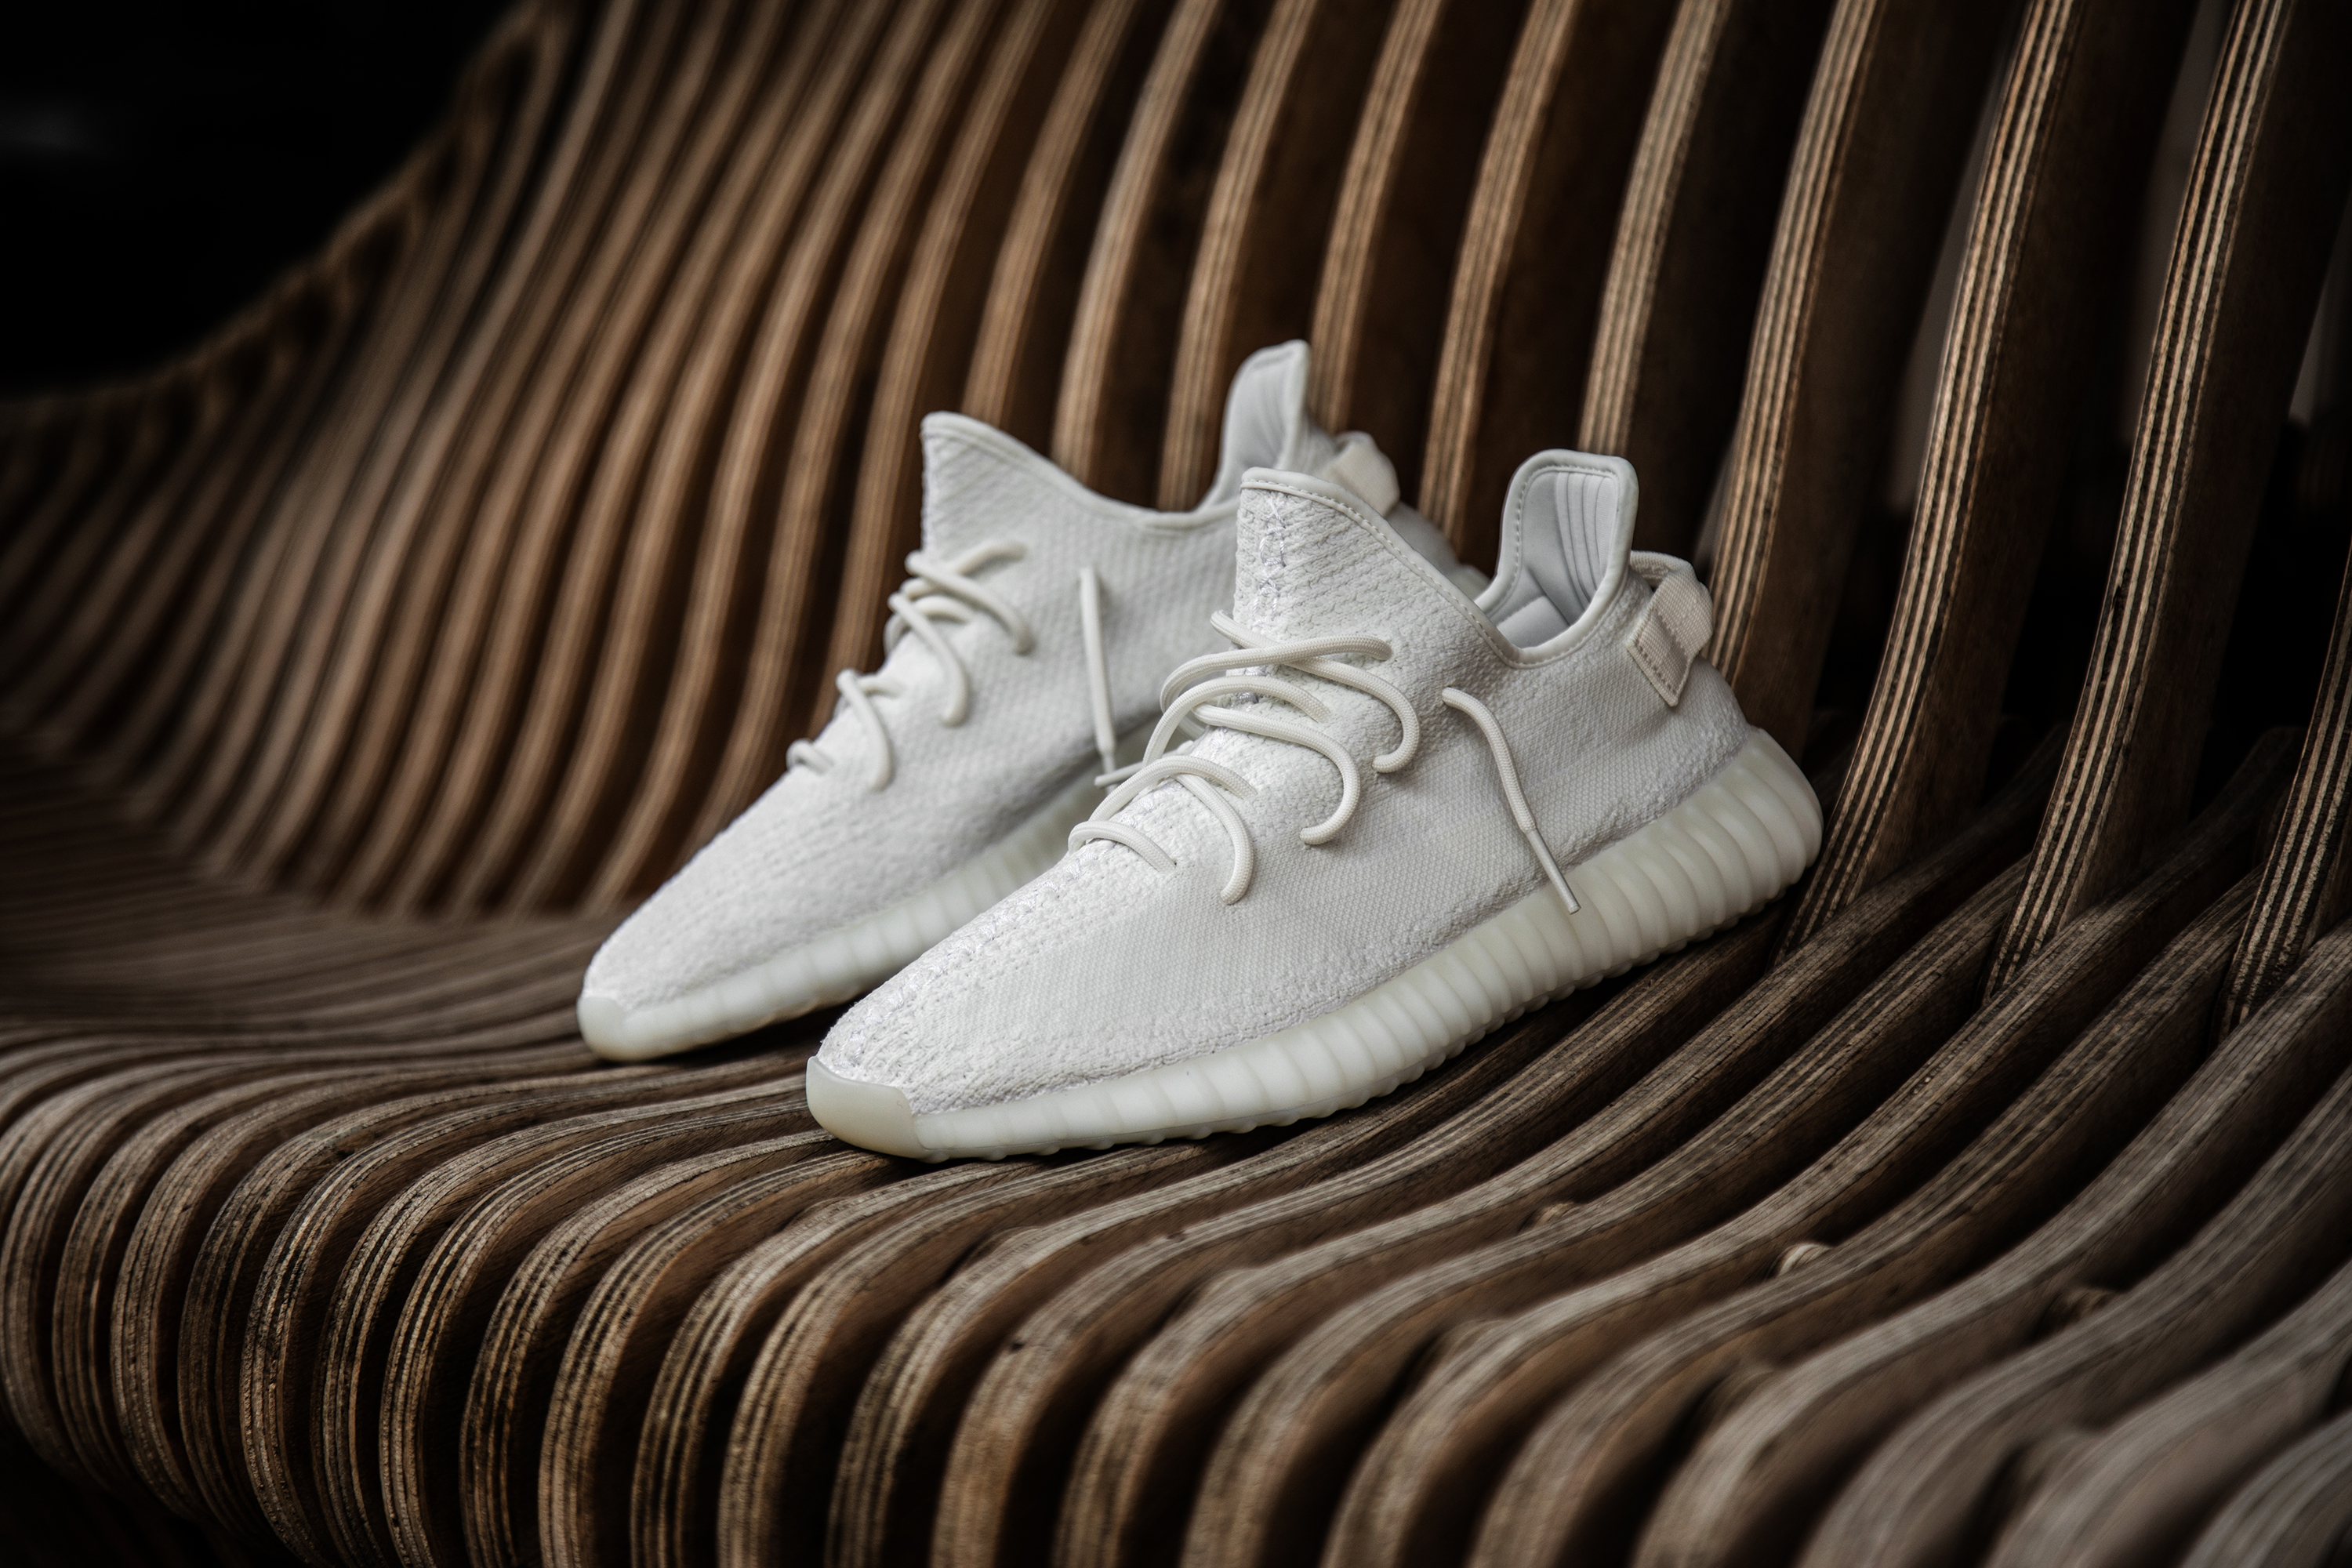 95761b54fcd82 YEEZYS ARE NOW MORE AVAILABLE